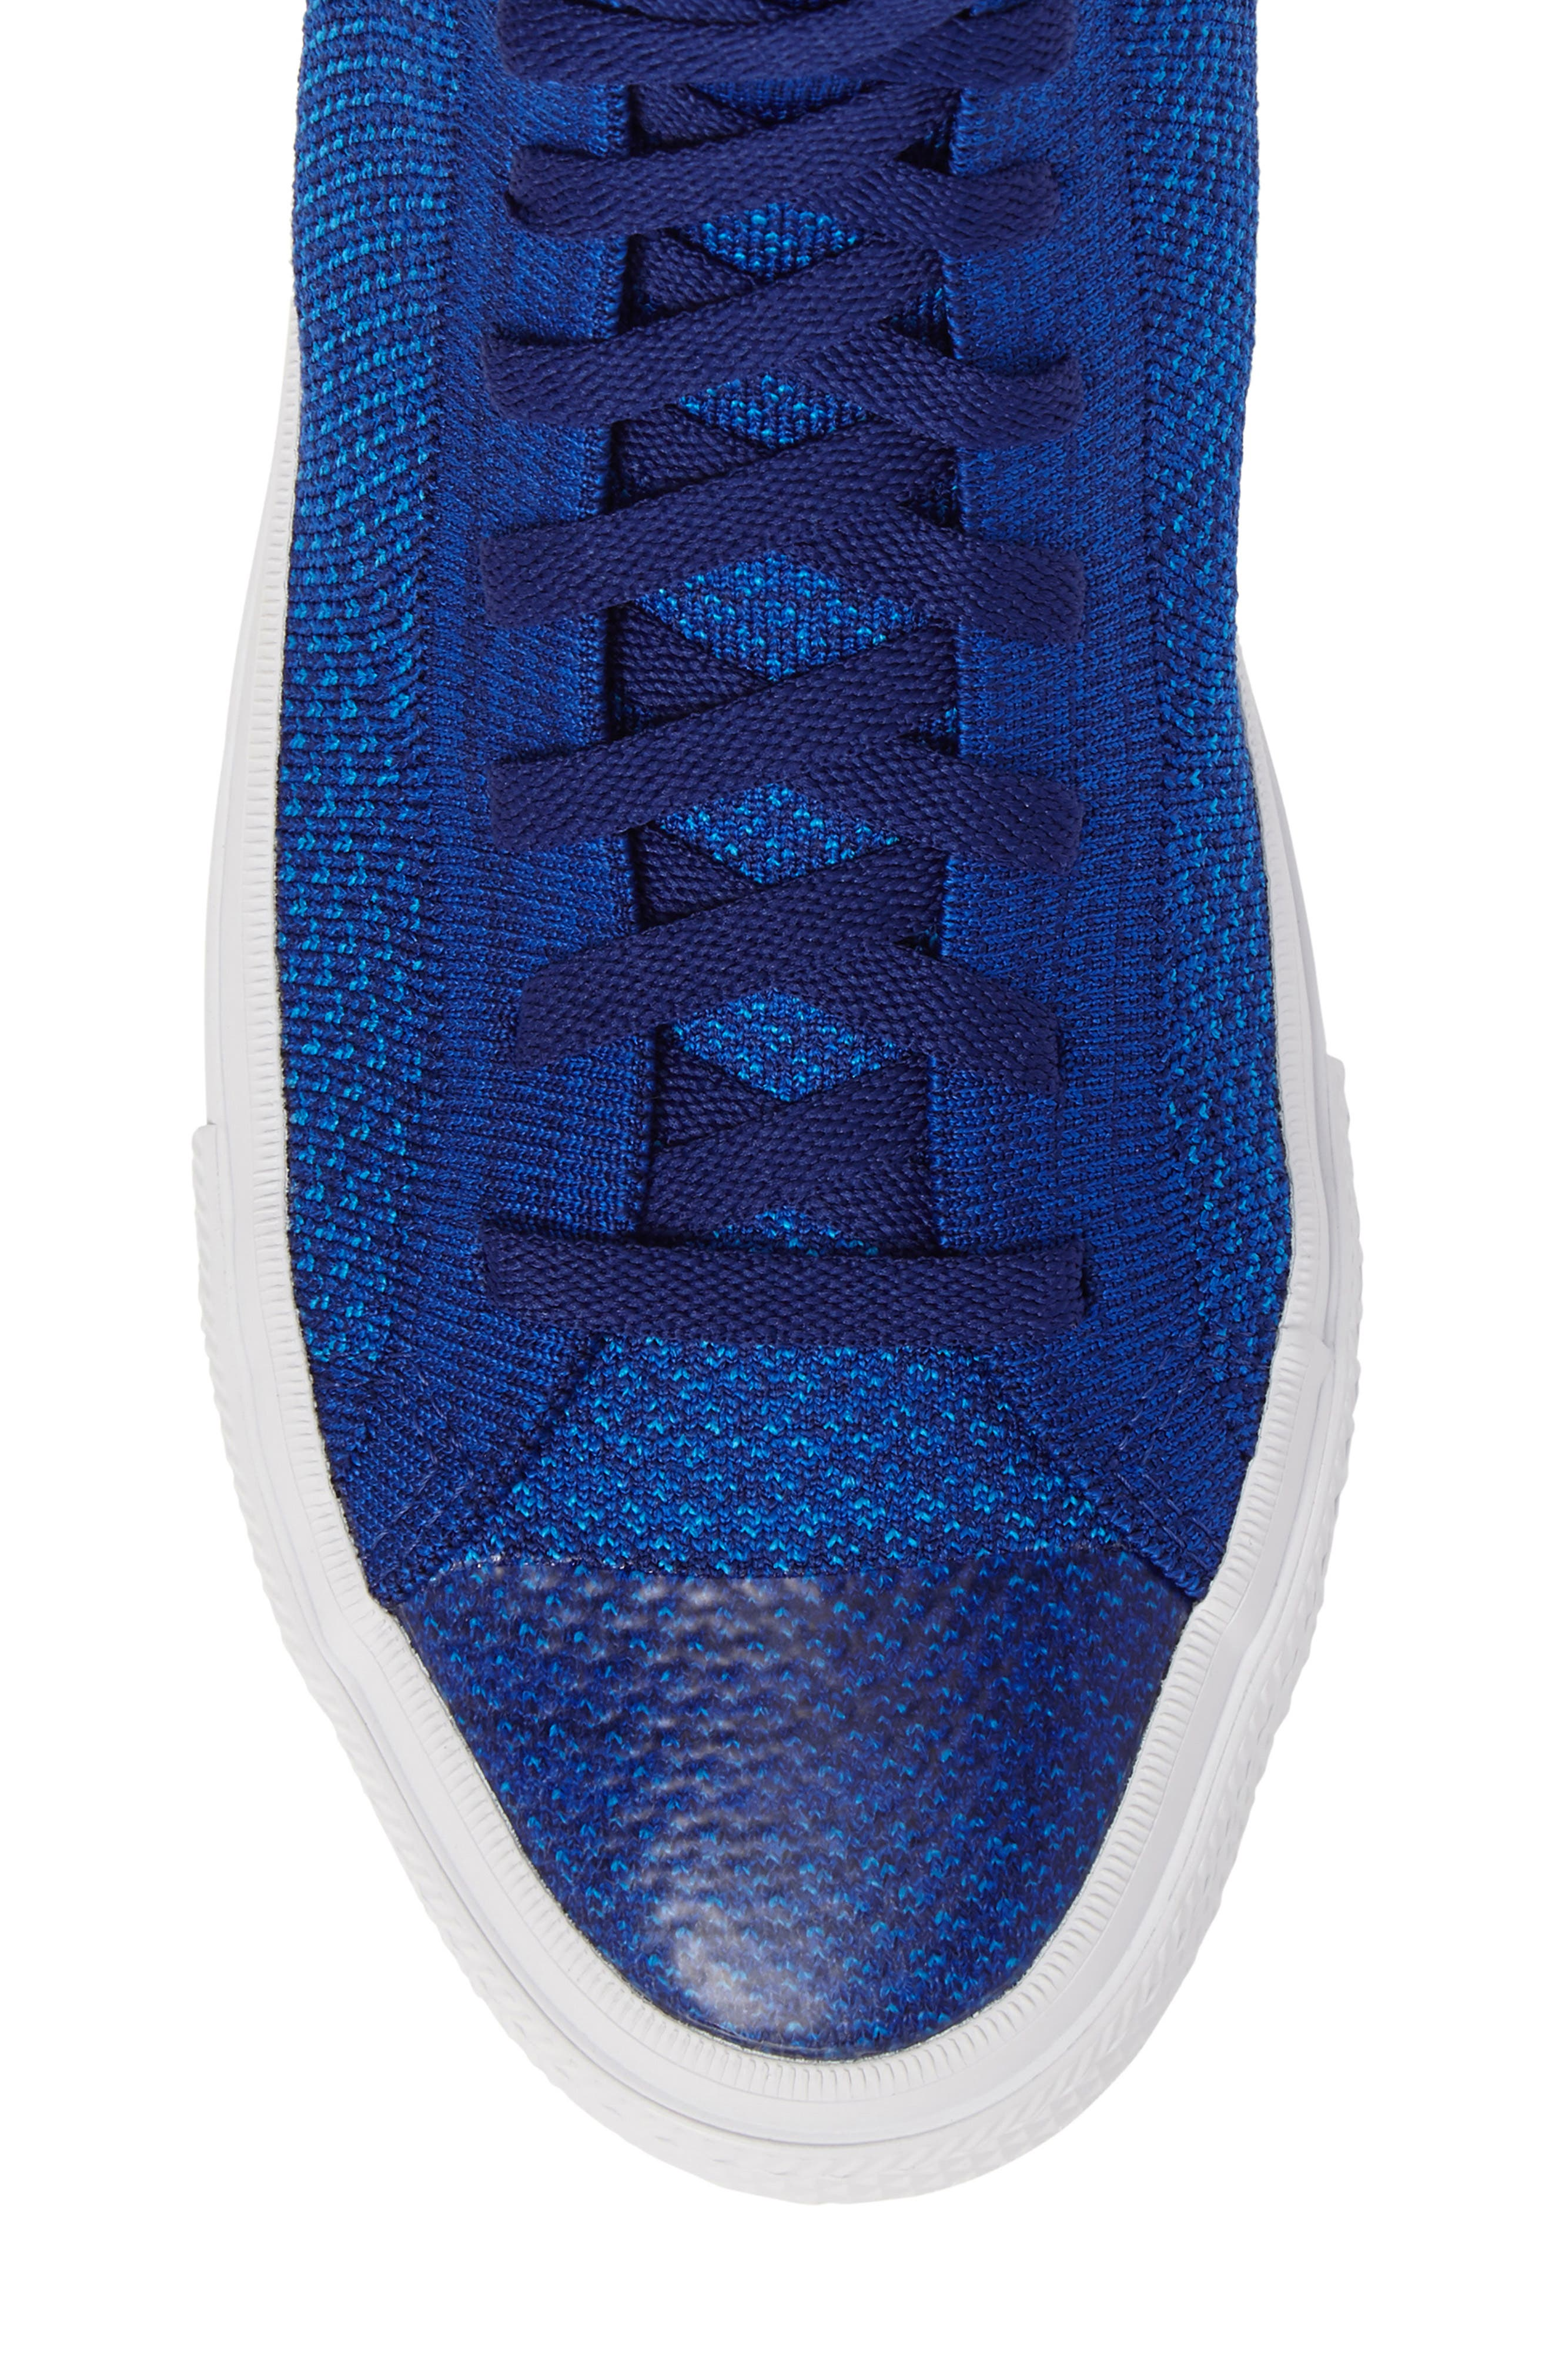 Chuck Taylor<sup>®</sup> All Star<sup>®</sup> Flyknit Hi Sneaker,                             Alternate thumbnail 29, color,